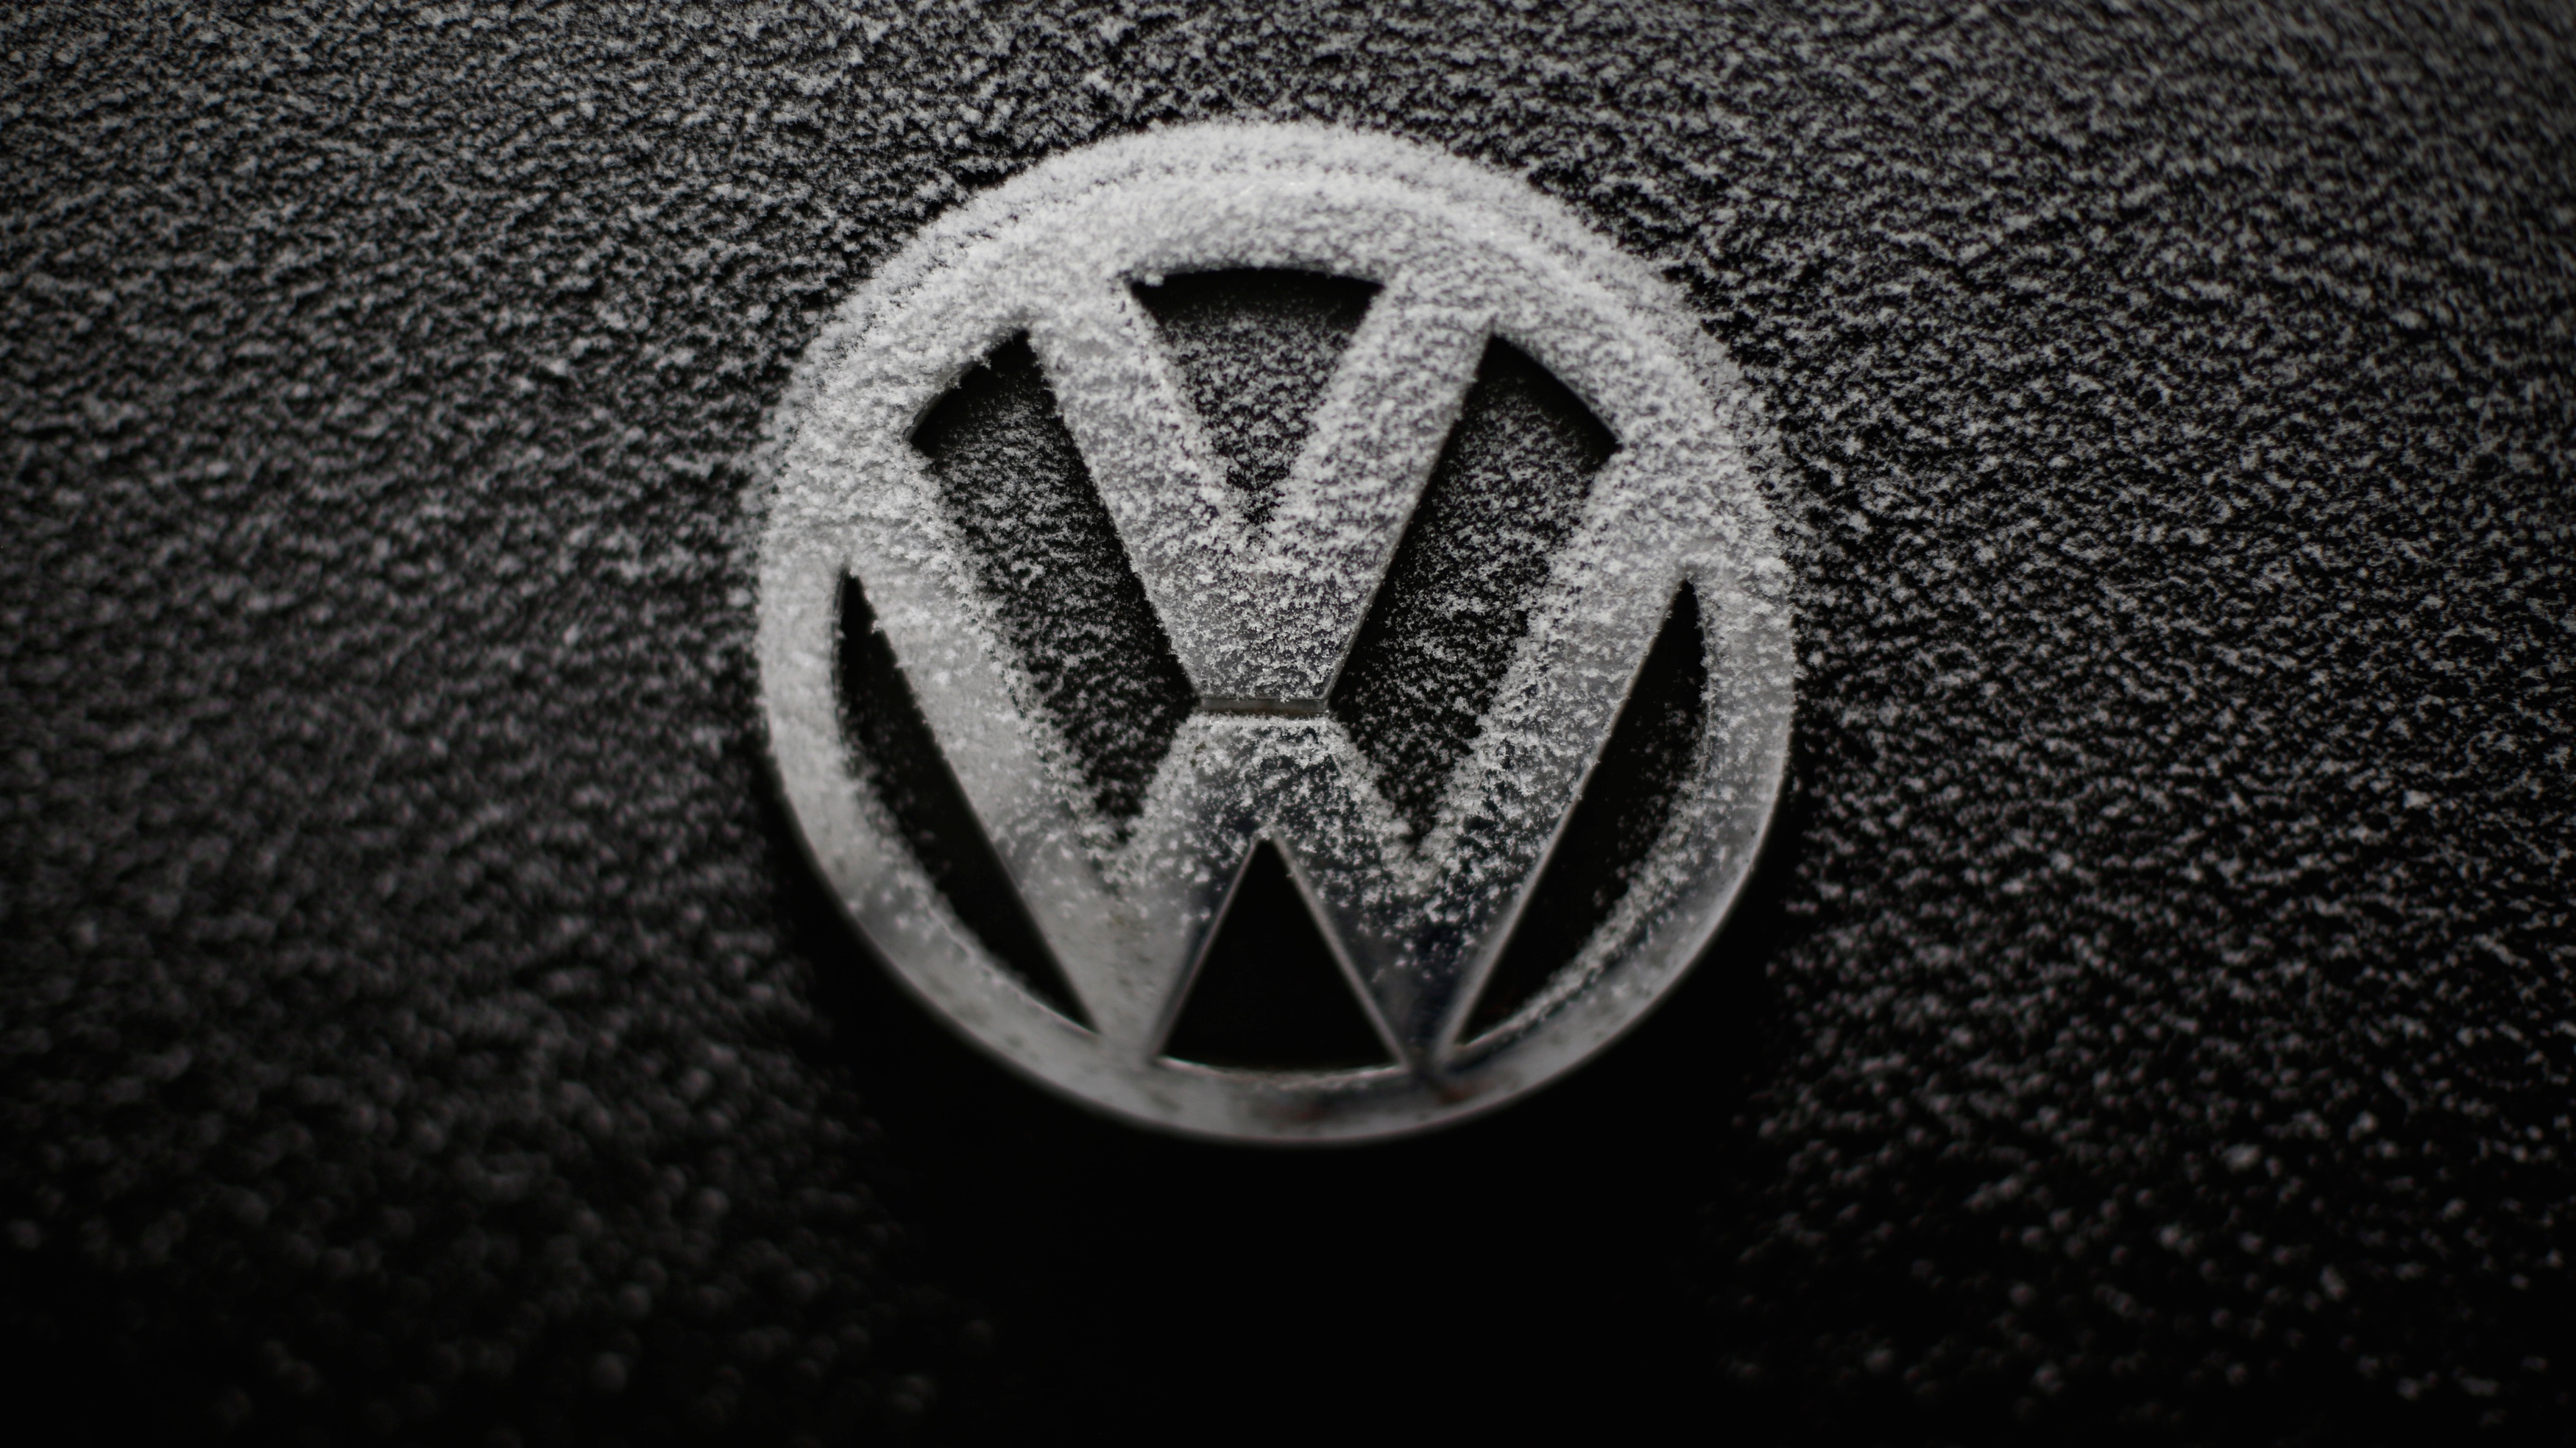 VW logo on car with snowflakes.